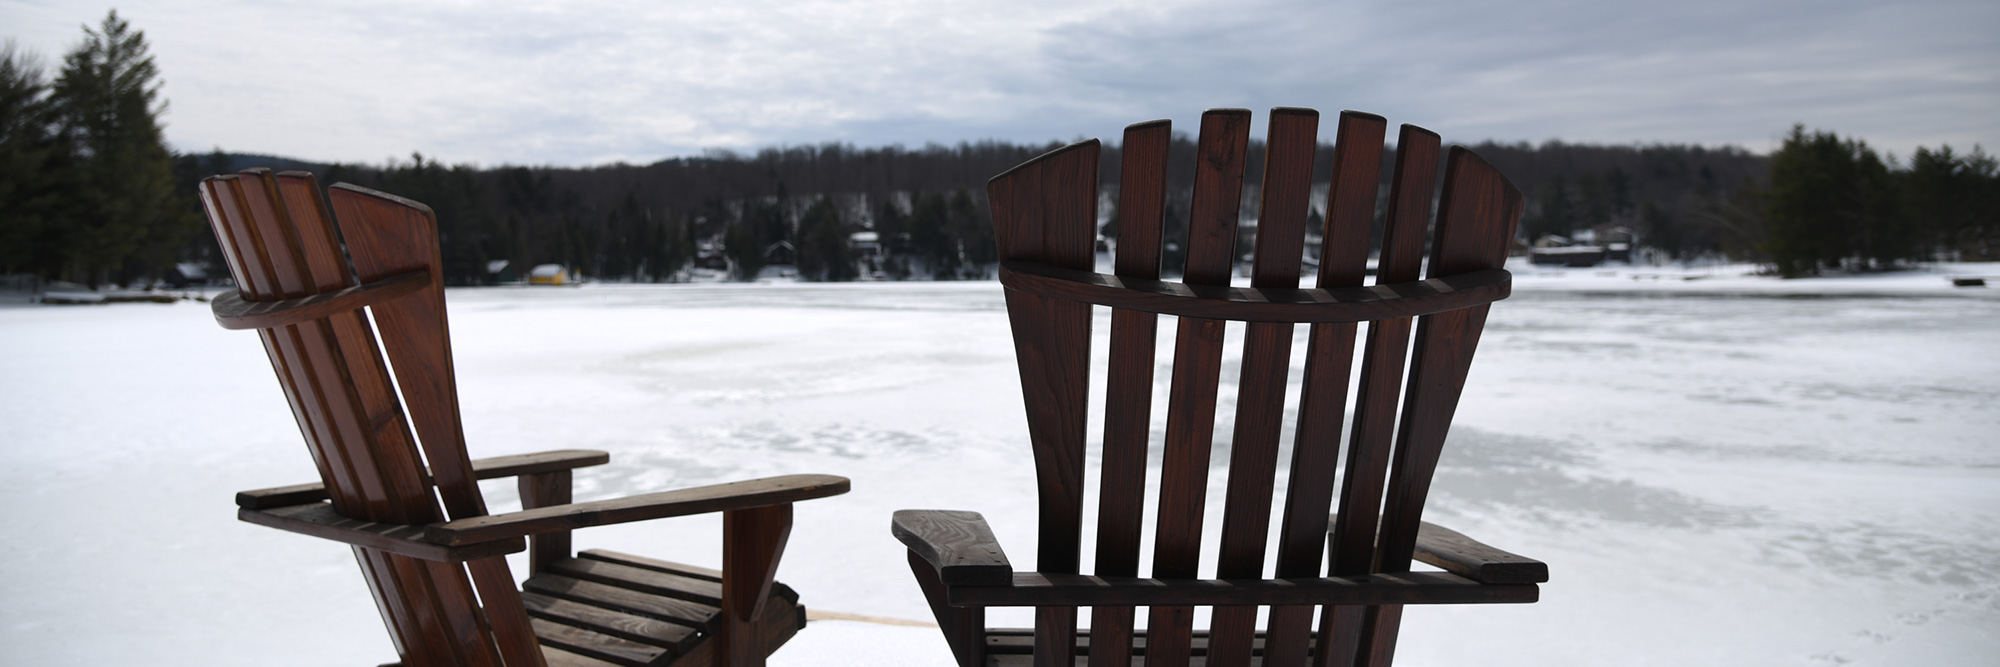 Experience Old Forge. Winter photo of Adirondack chairs on the lake.